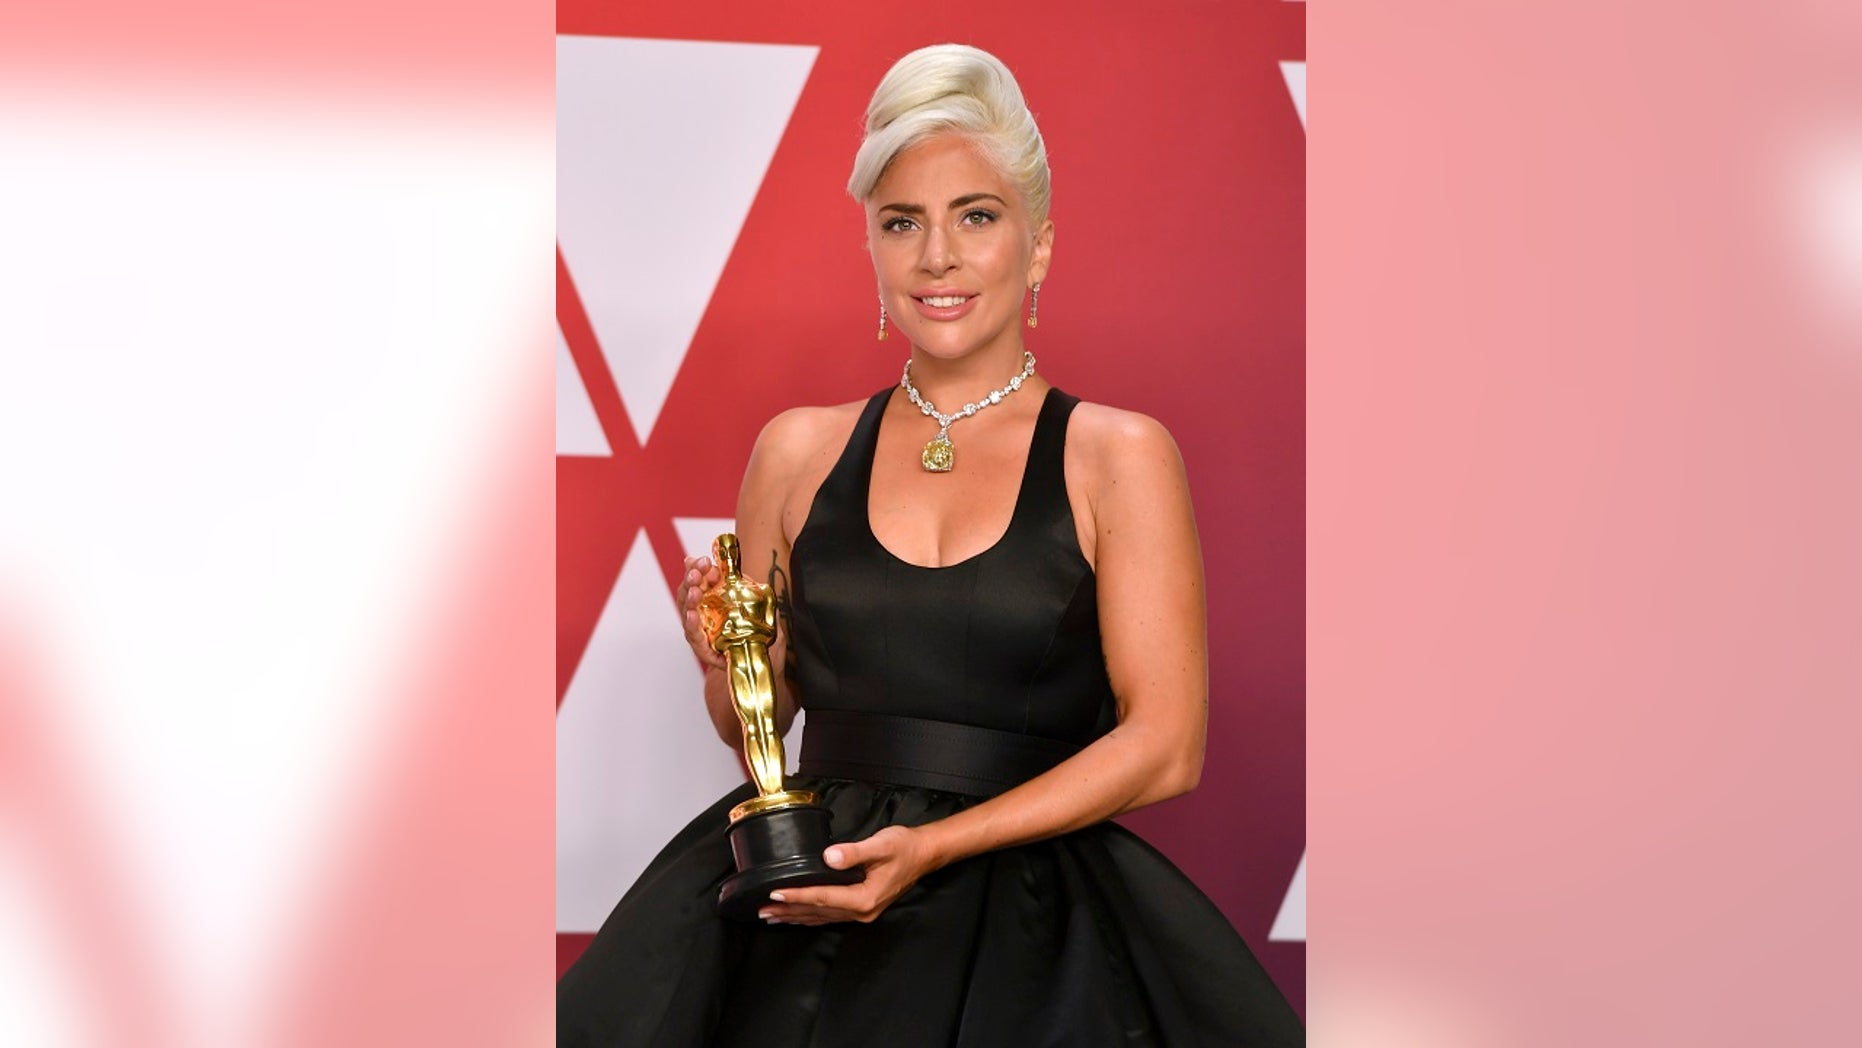 """Lady Gaga, winner of the award for best original song for """"Shallow"""" from """"A Star Is Born"""", poses in the press room at the Oscars on Sunday, Feb. 24, 2019, at the Dolby Theatre in Los Angeles. (Photo by Jordan Strauss/Invision/AP)"""